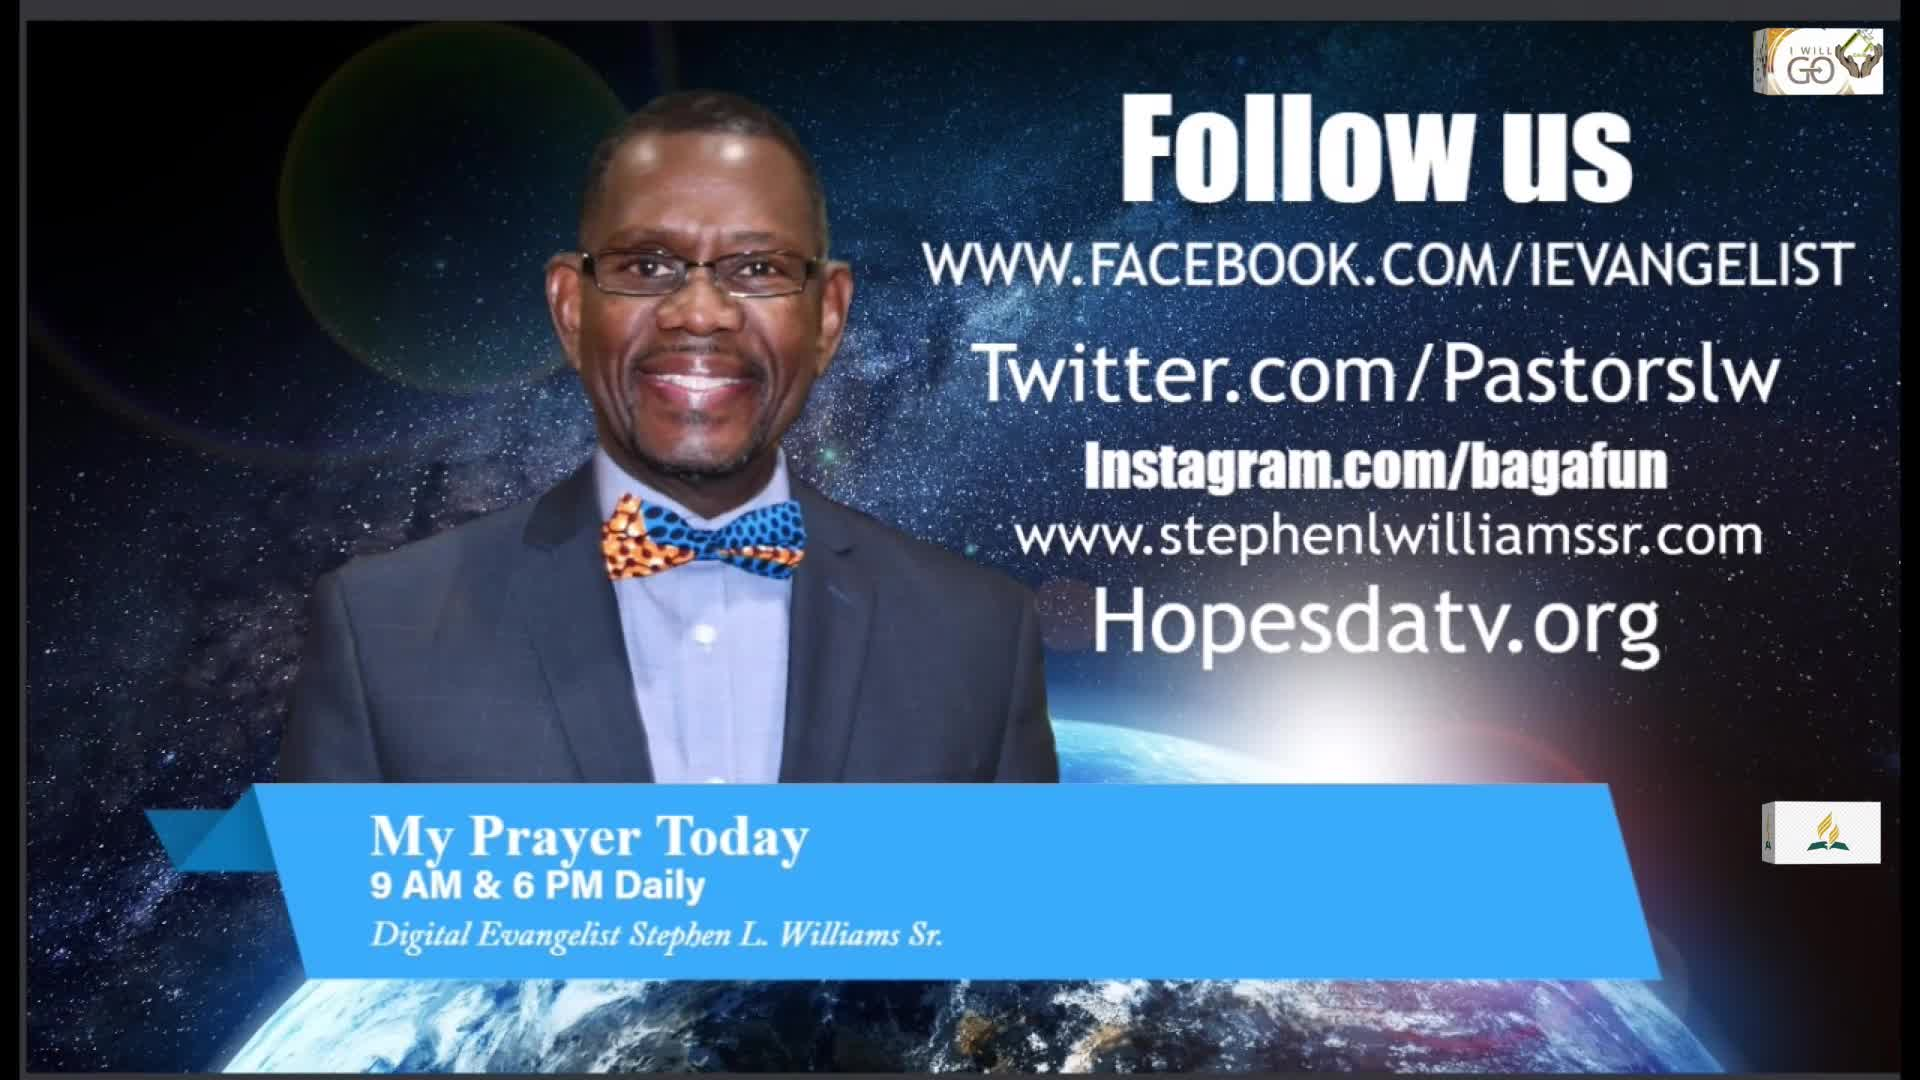 My Prayer Today Dr Stephen Williams